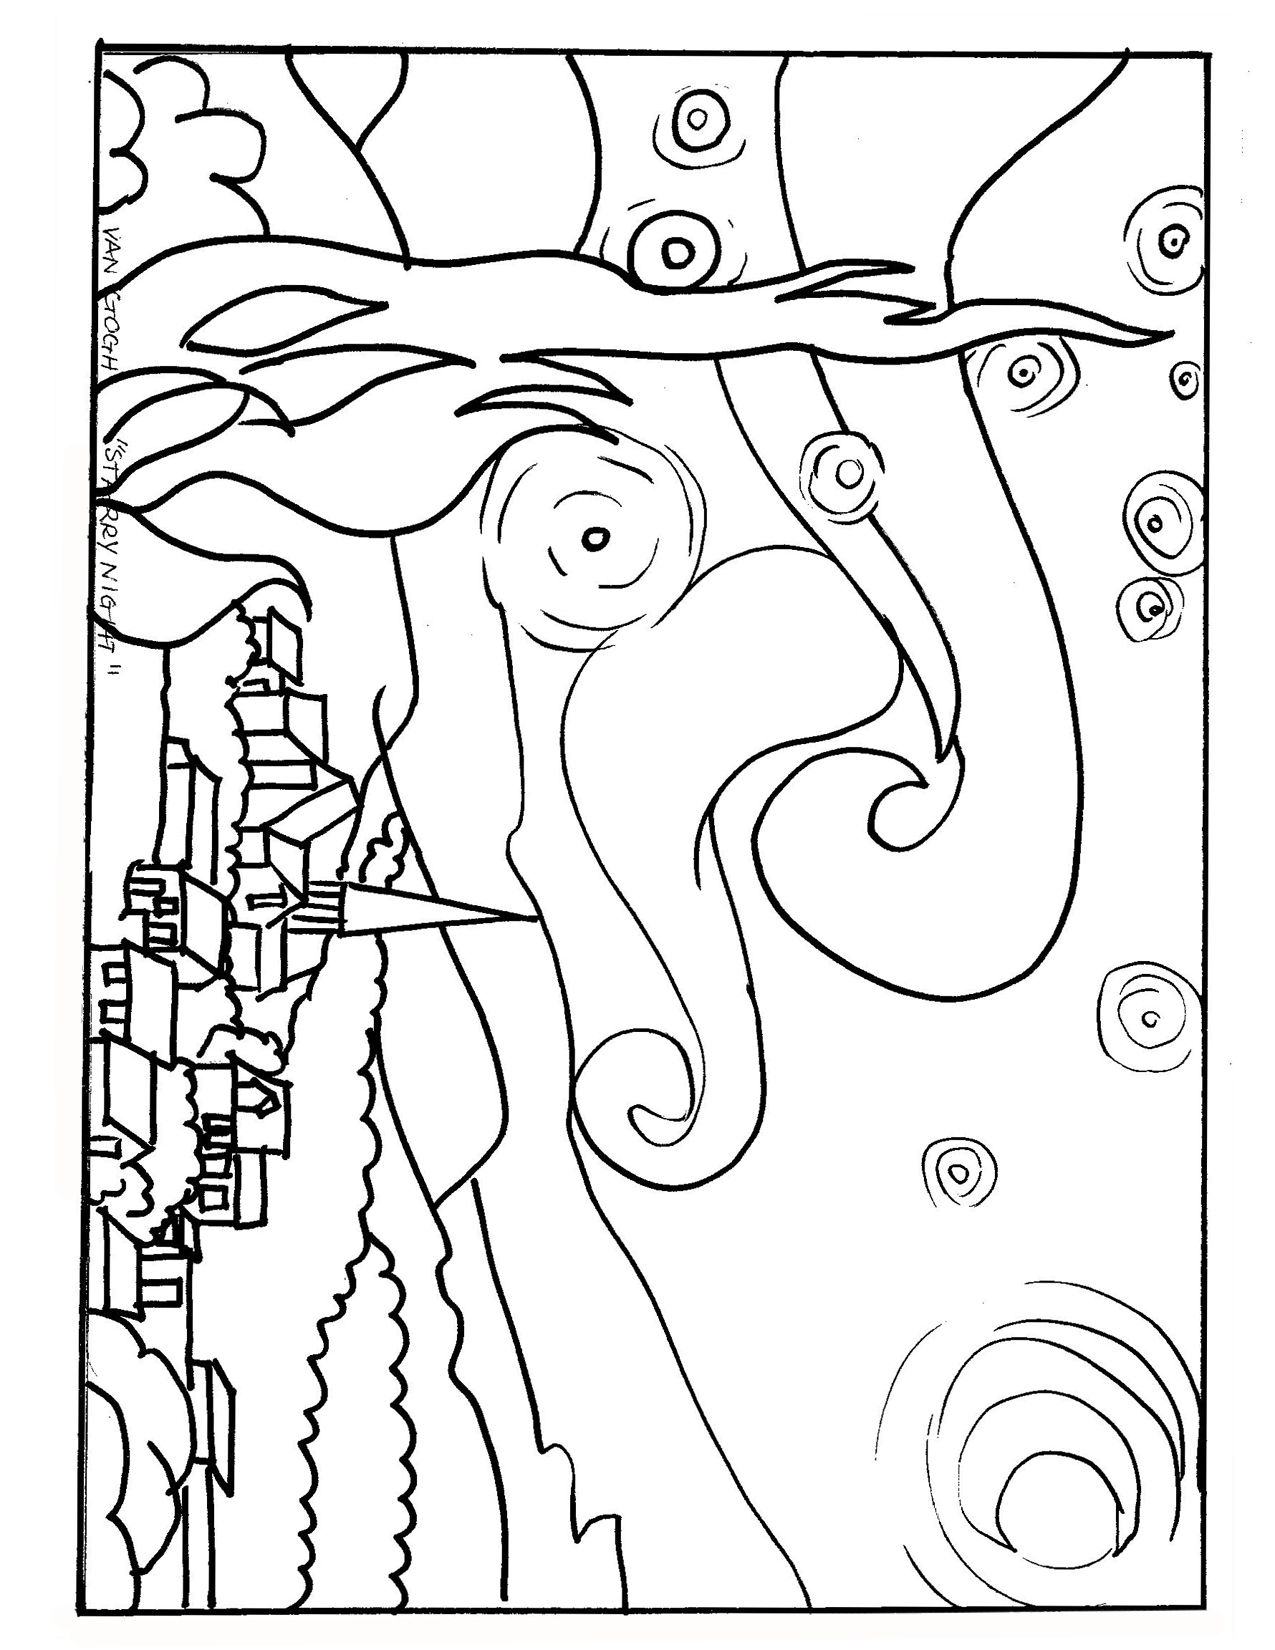 Starry Night coloring page | KIDS - Printables | Pinterest